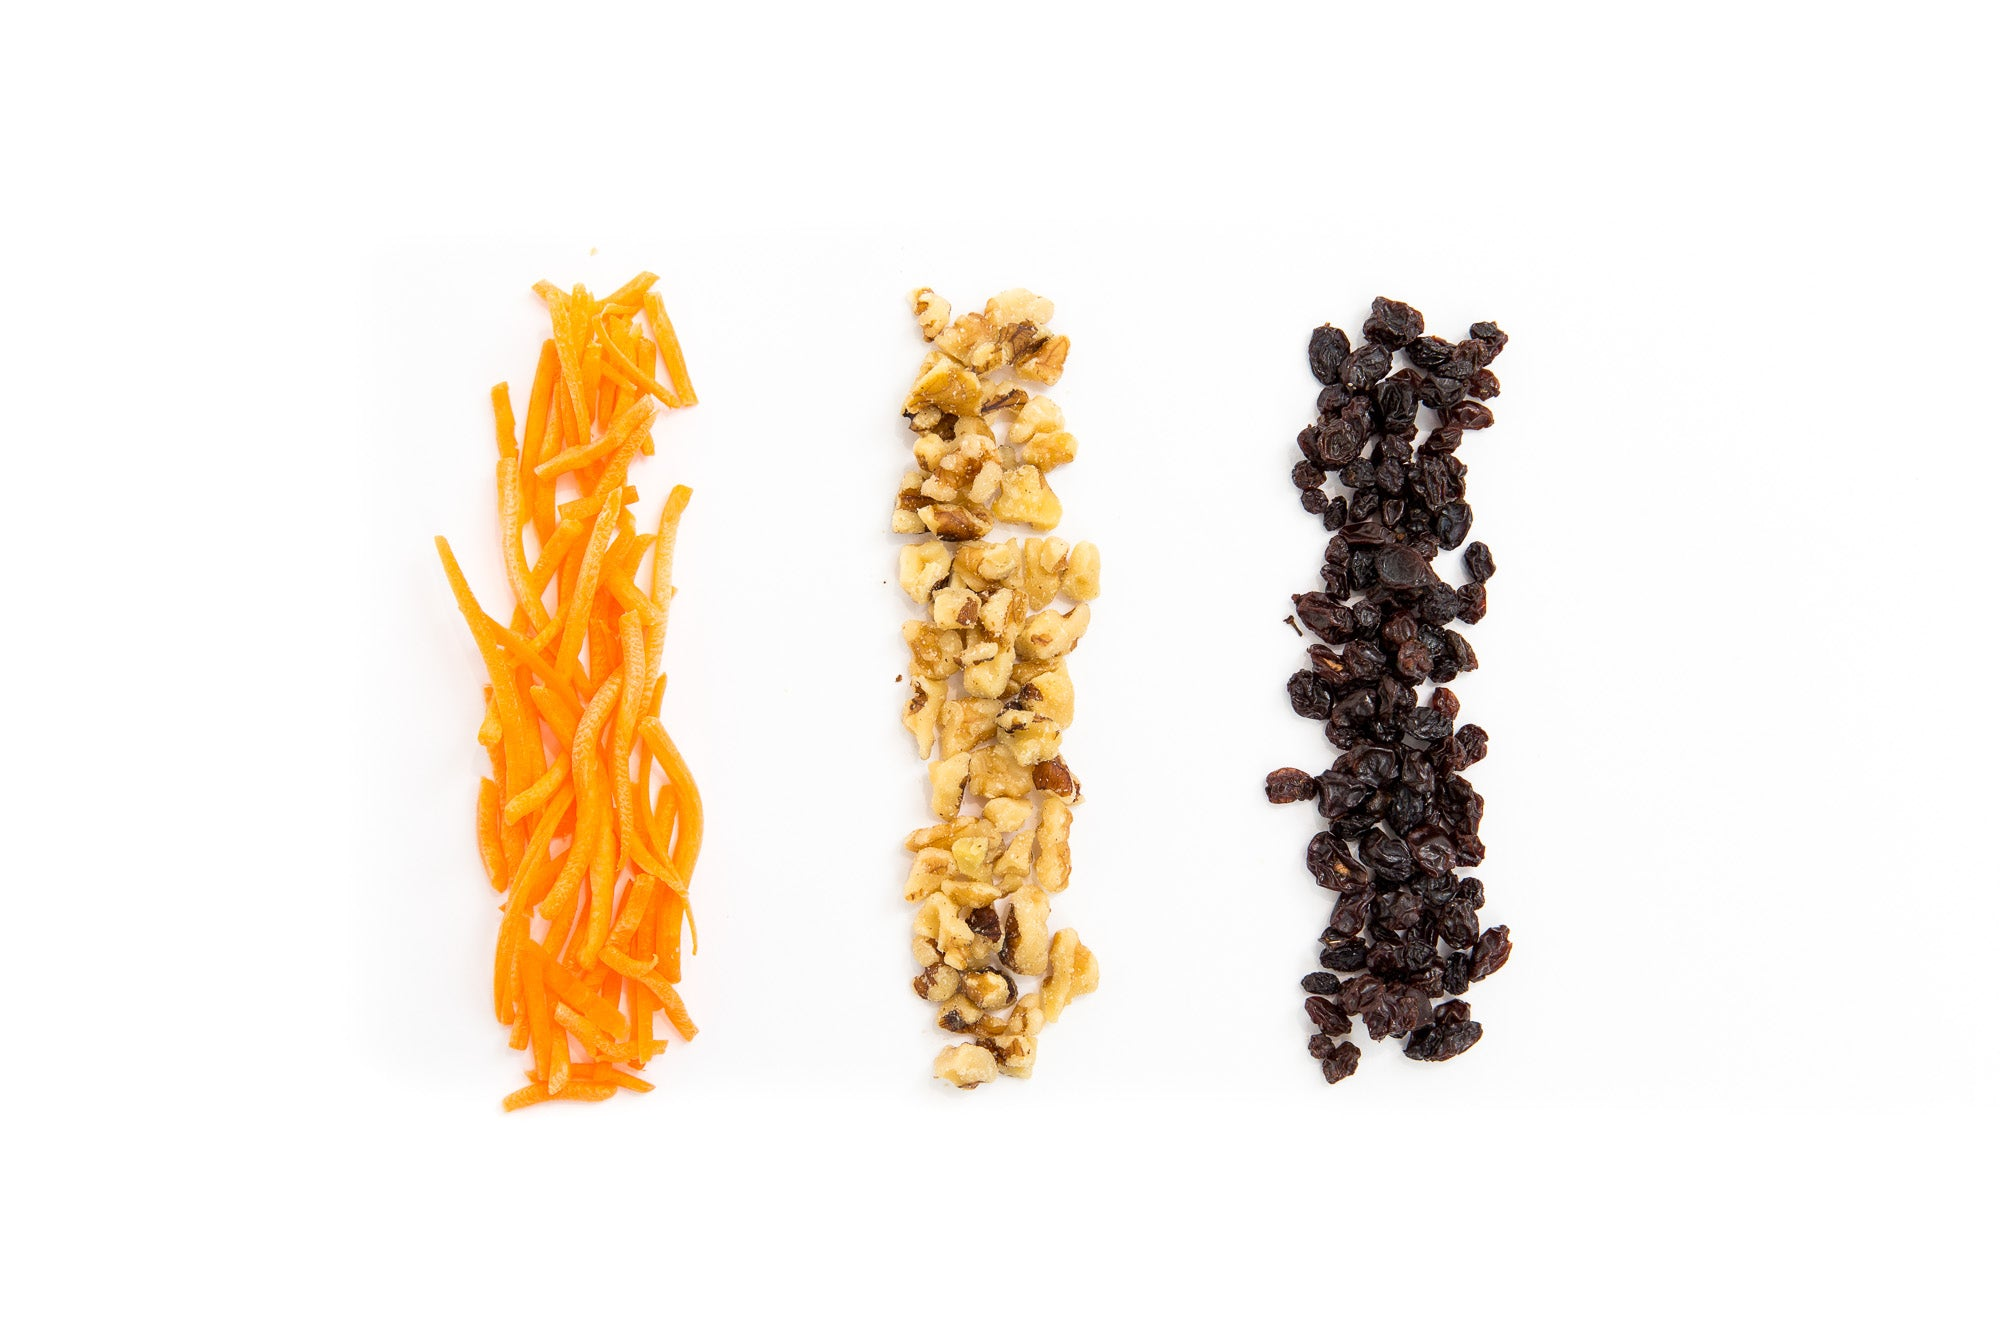 Image of three vertical line piles of carrots, walnuts, and raisins used in Miss Jones Baking Co Carrot Cake Bark